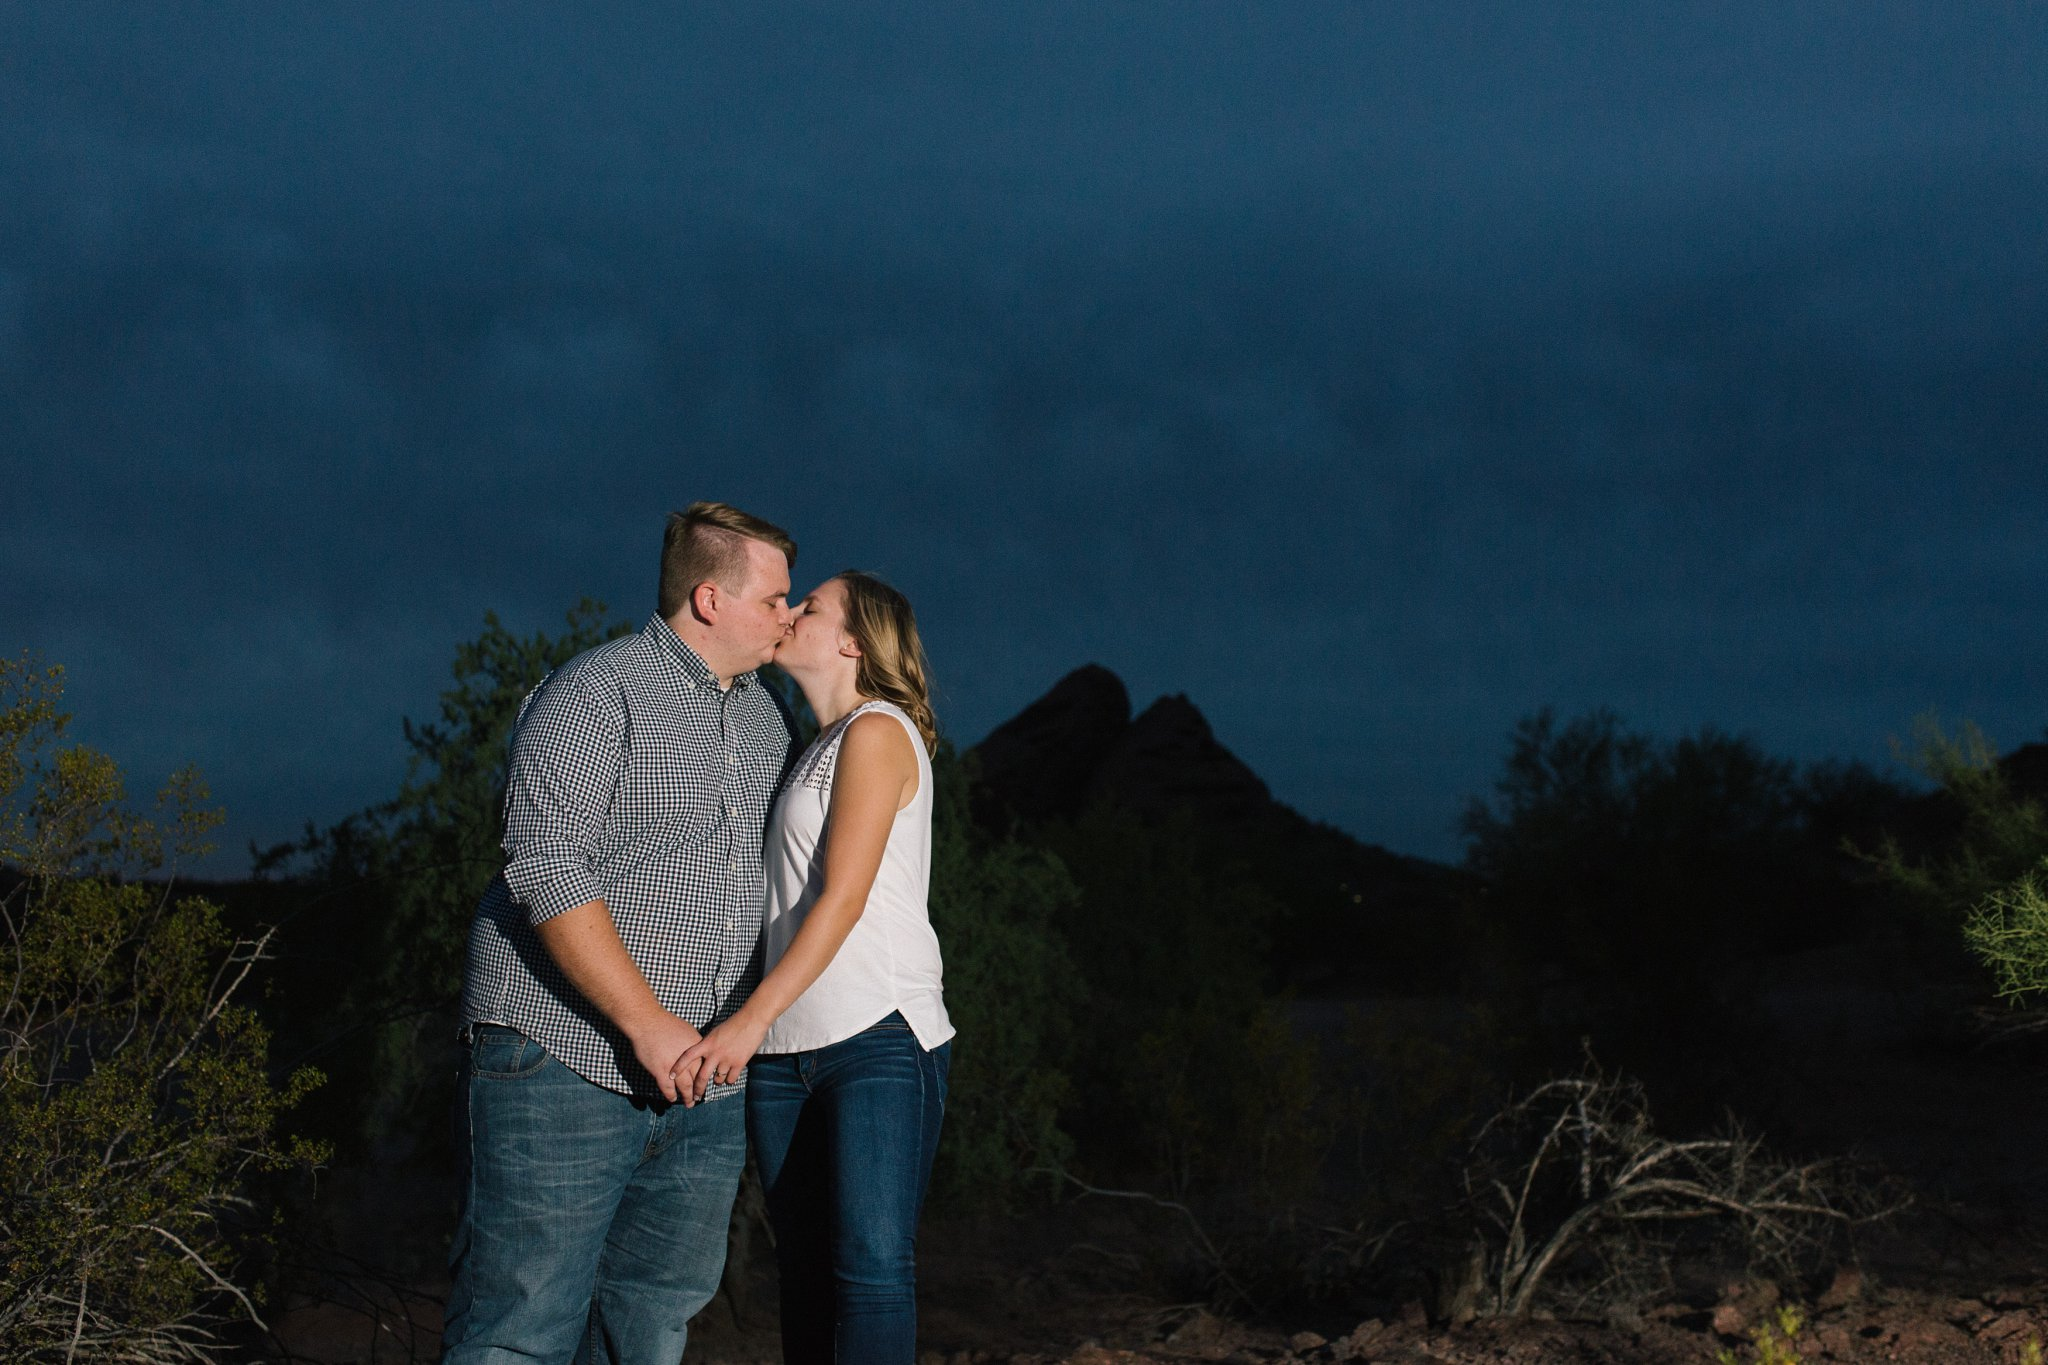 engagement photos at night in desert Tempe, AZ